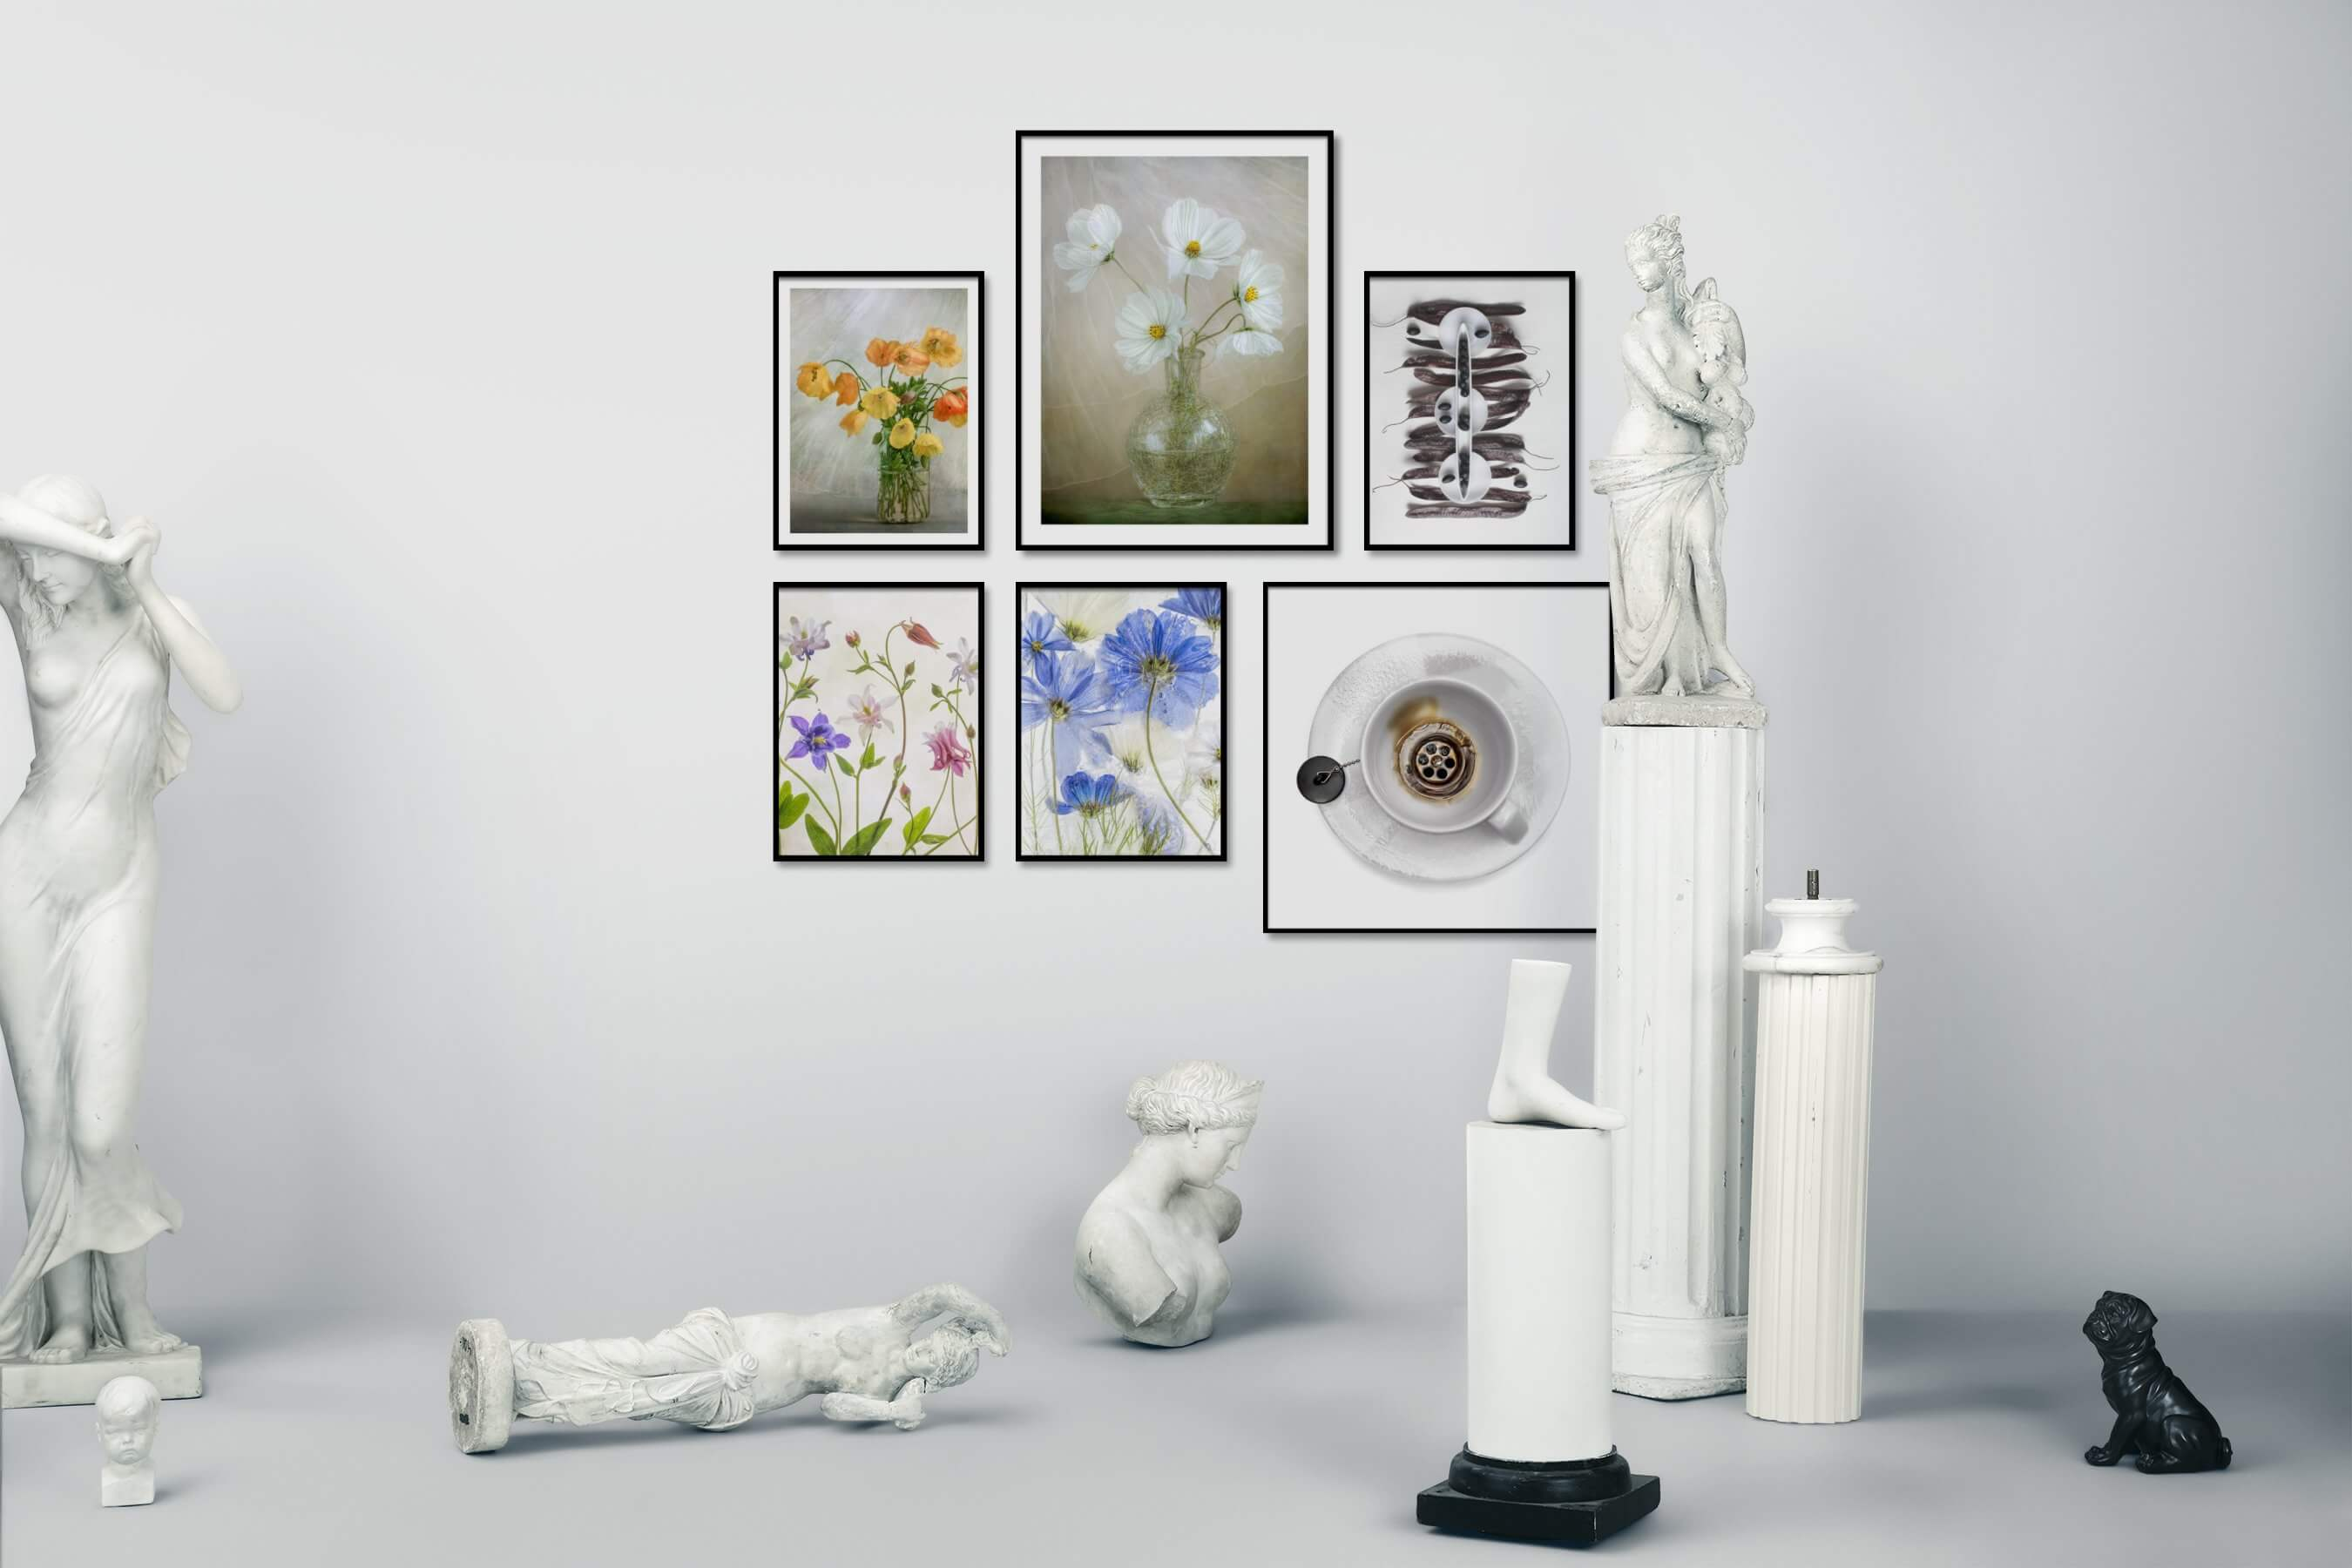 Gallery wall idea with six framed pictures arranged on a wall depicting Flowers & Plants, Vintage, For the Moderate, Colorful, Artsy, Bright Tones, and For the Minimalist